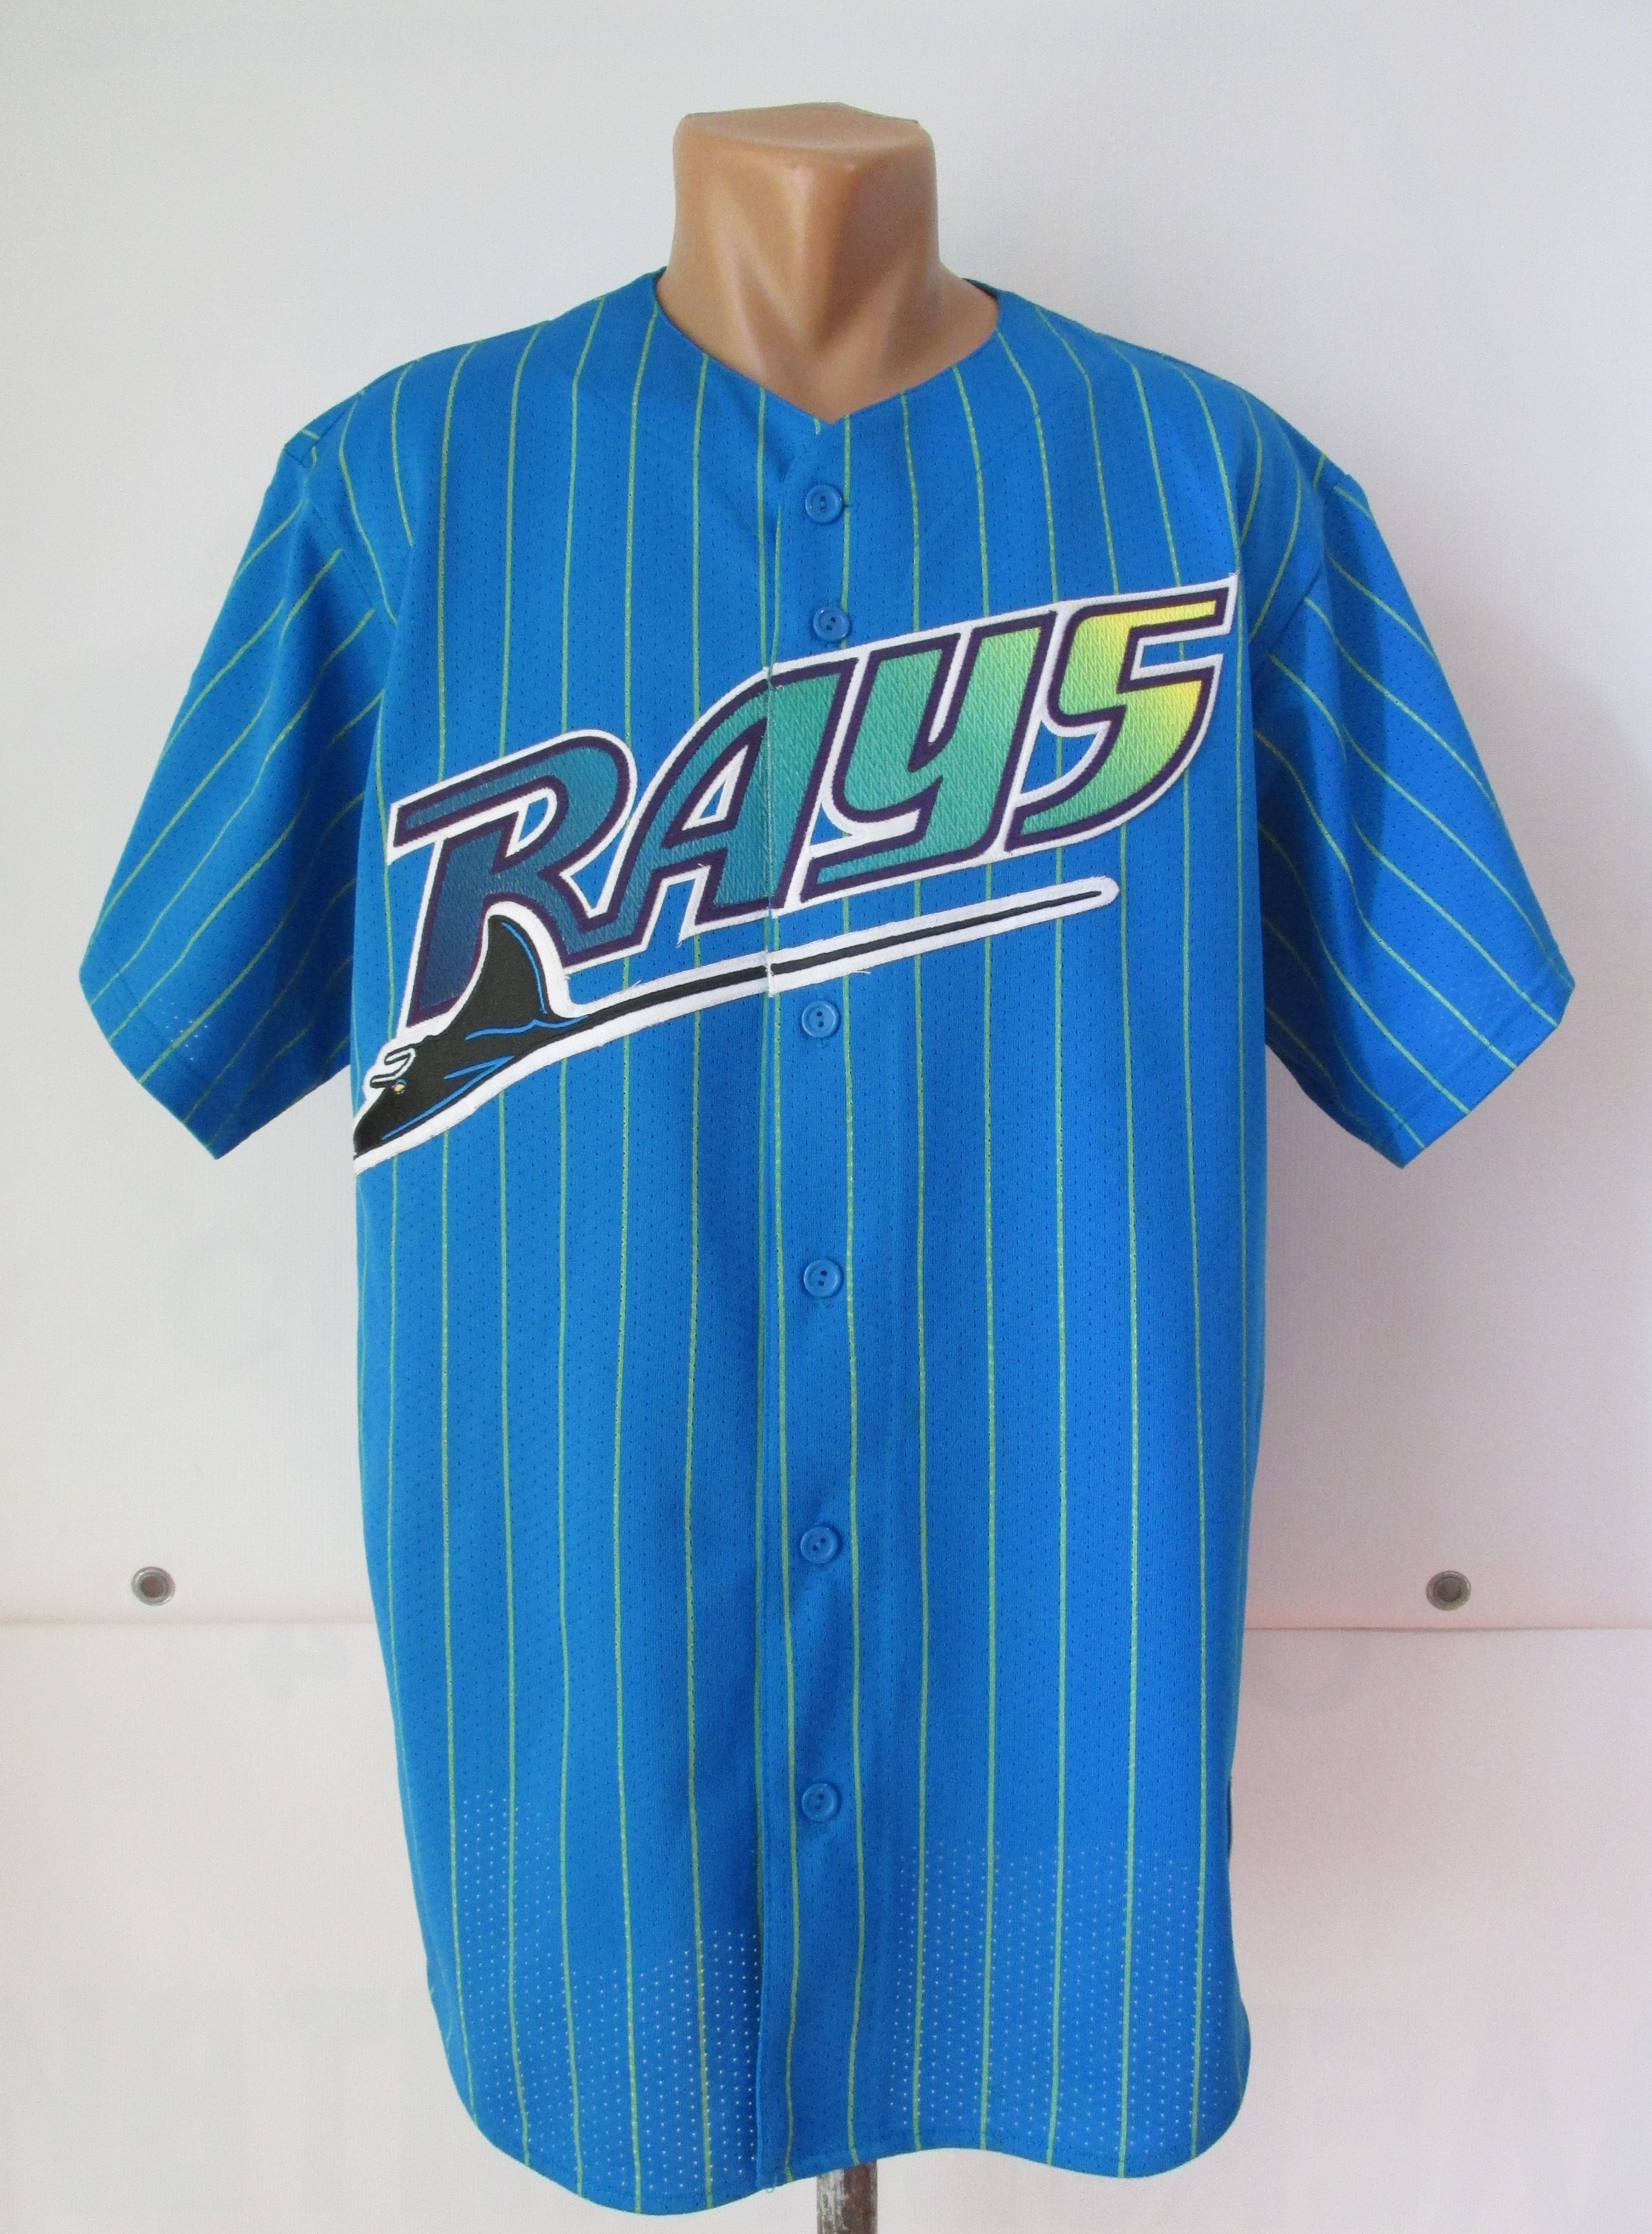 low priced 245e1 6f7cb real tampa bay rays baseball jersey 22c89 679a3